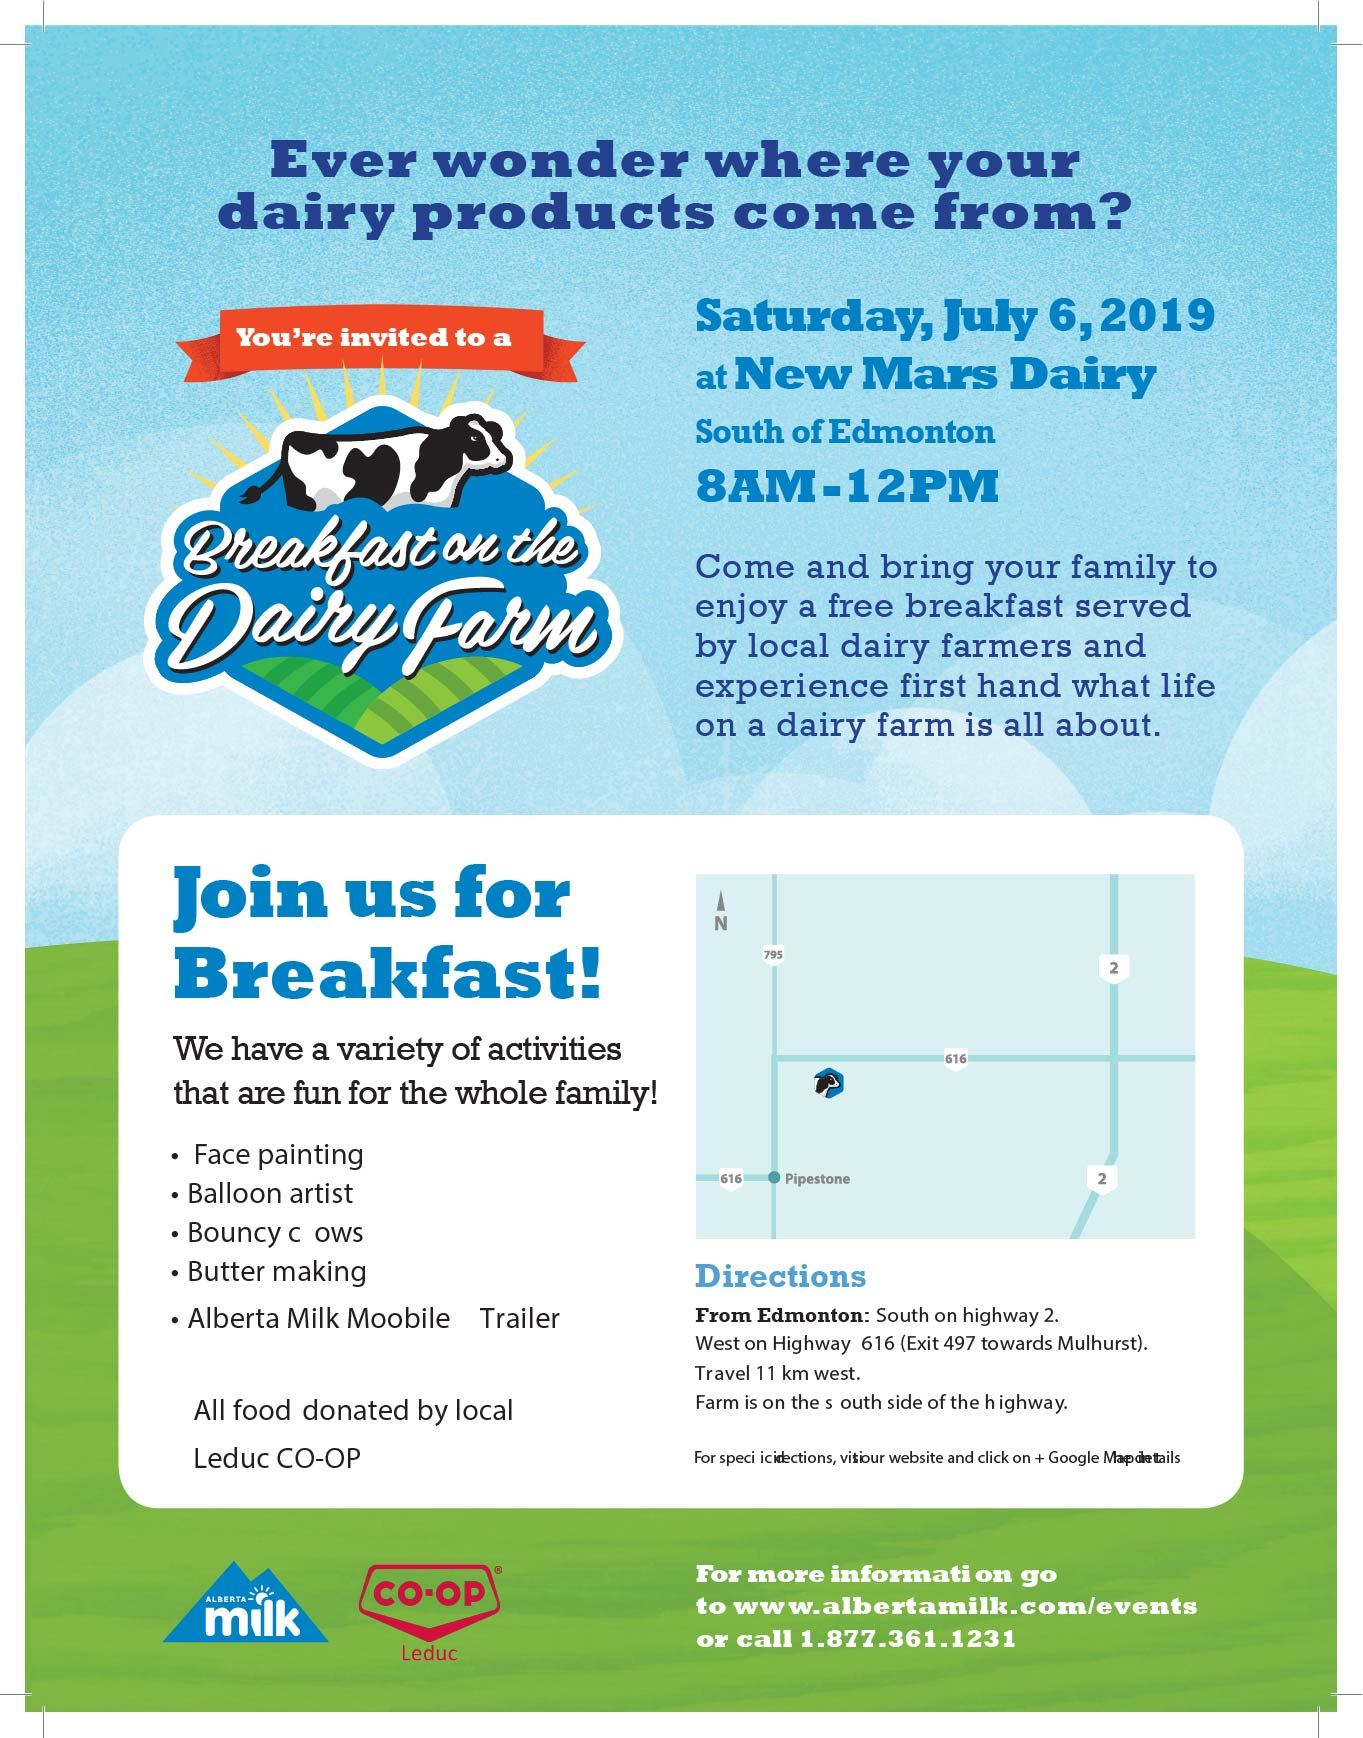 2019 Breakfast on the Dairy Farm